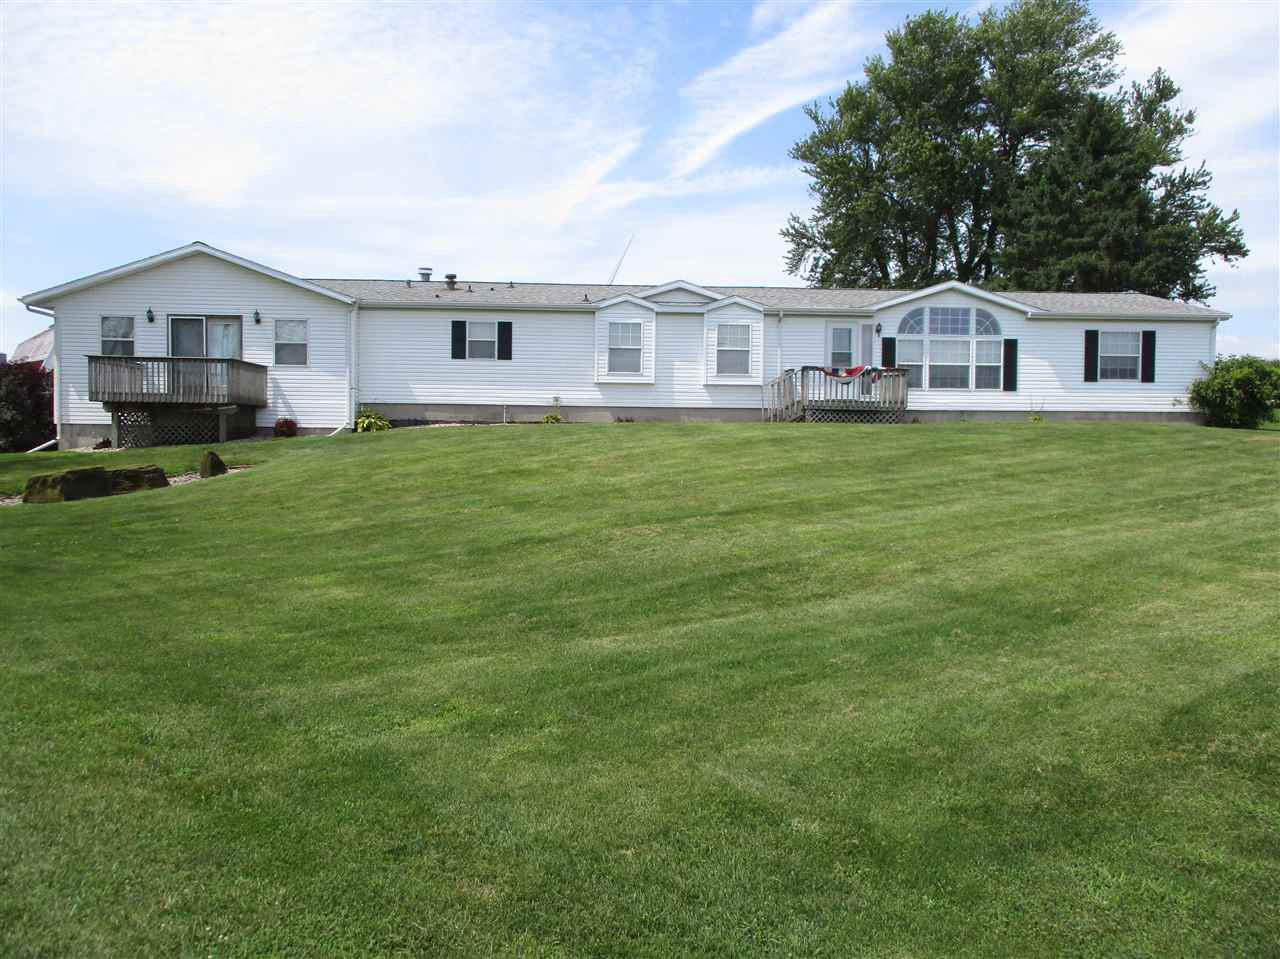 Farmette presently dairy goat farm, ranch house-outbuildings in excellent condition!  1-story manufactured ranch home.  Very well maintained and attractively landscaped.